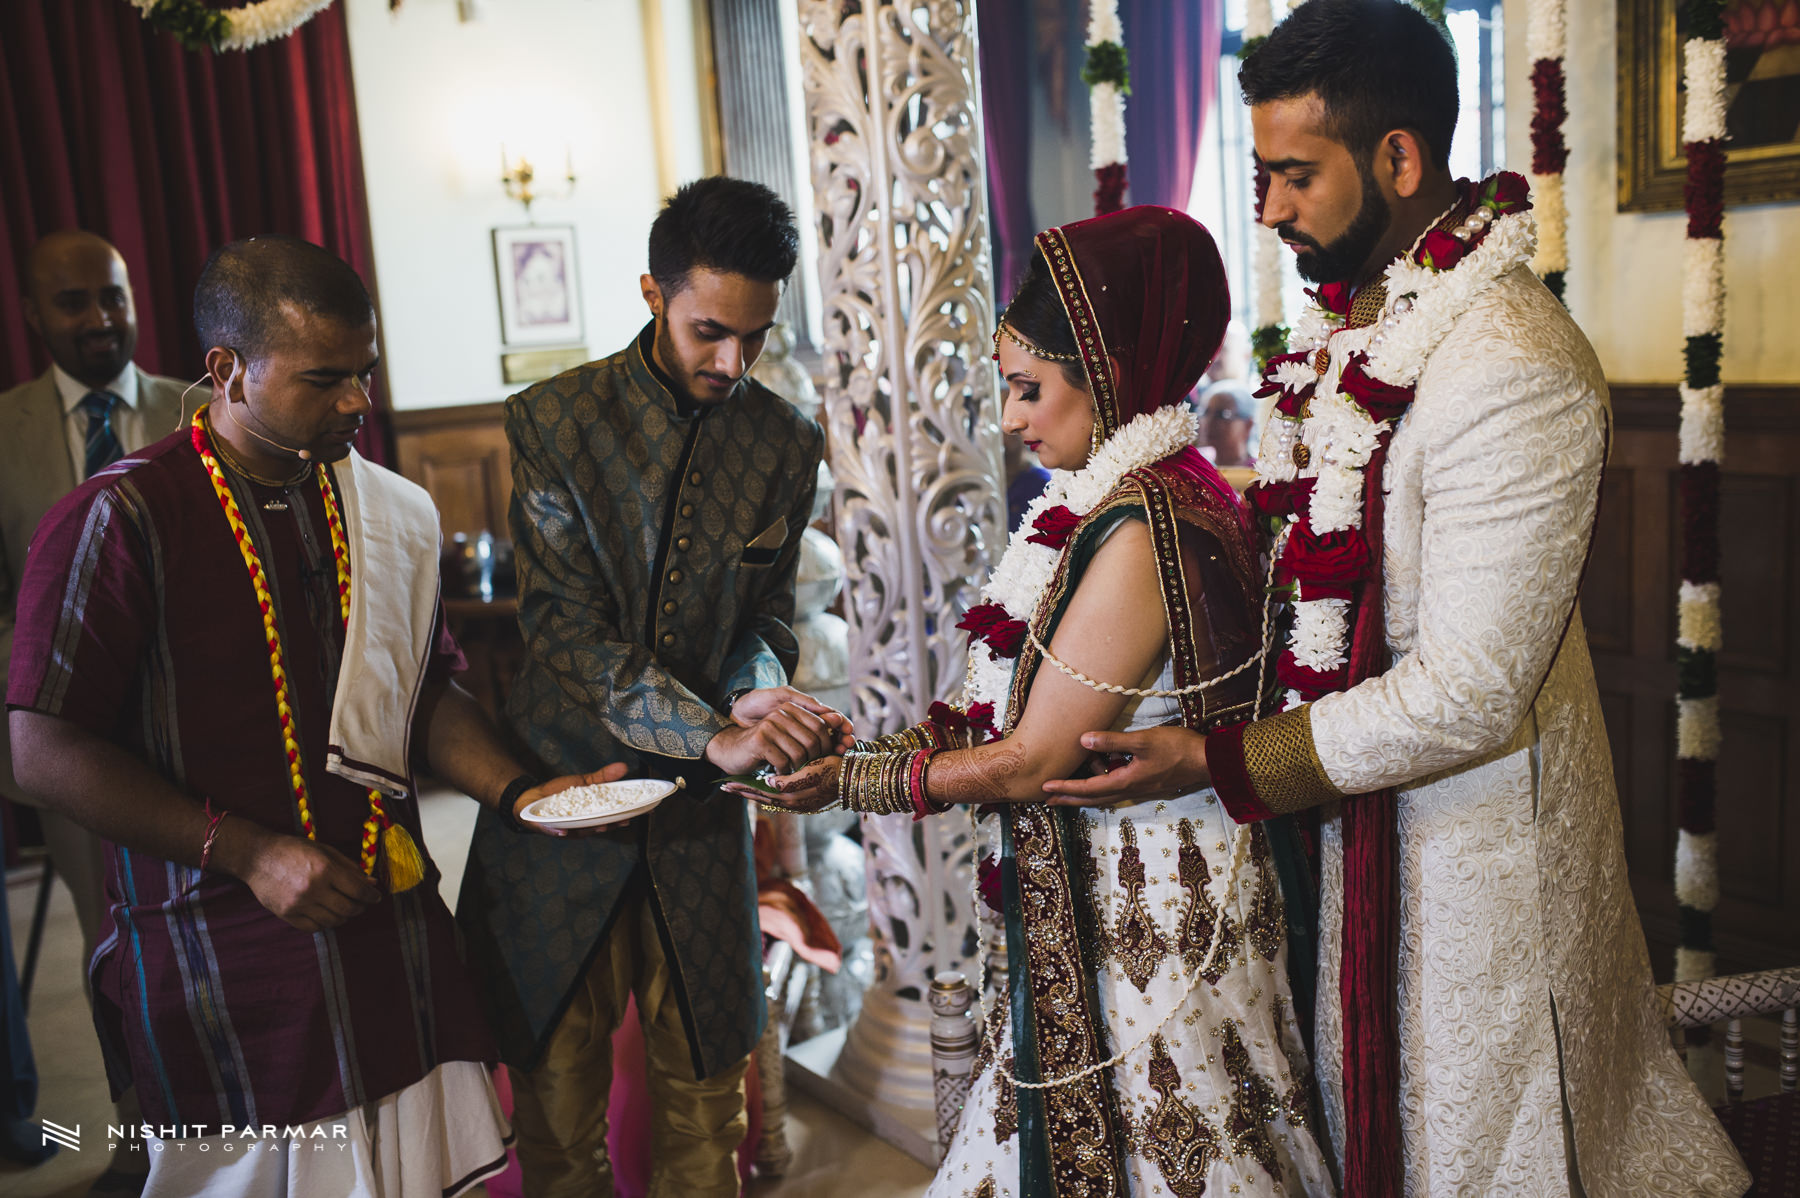 Brother blessing bride and groom